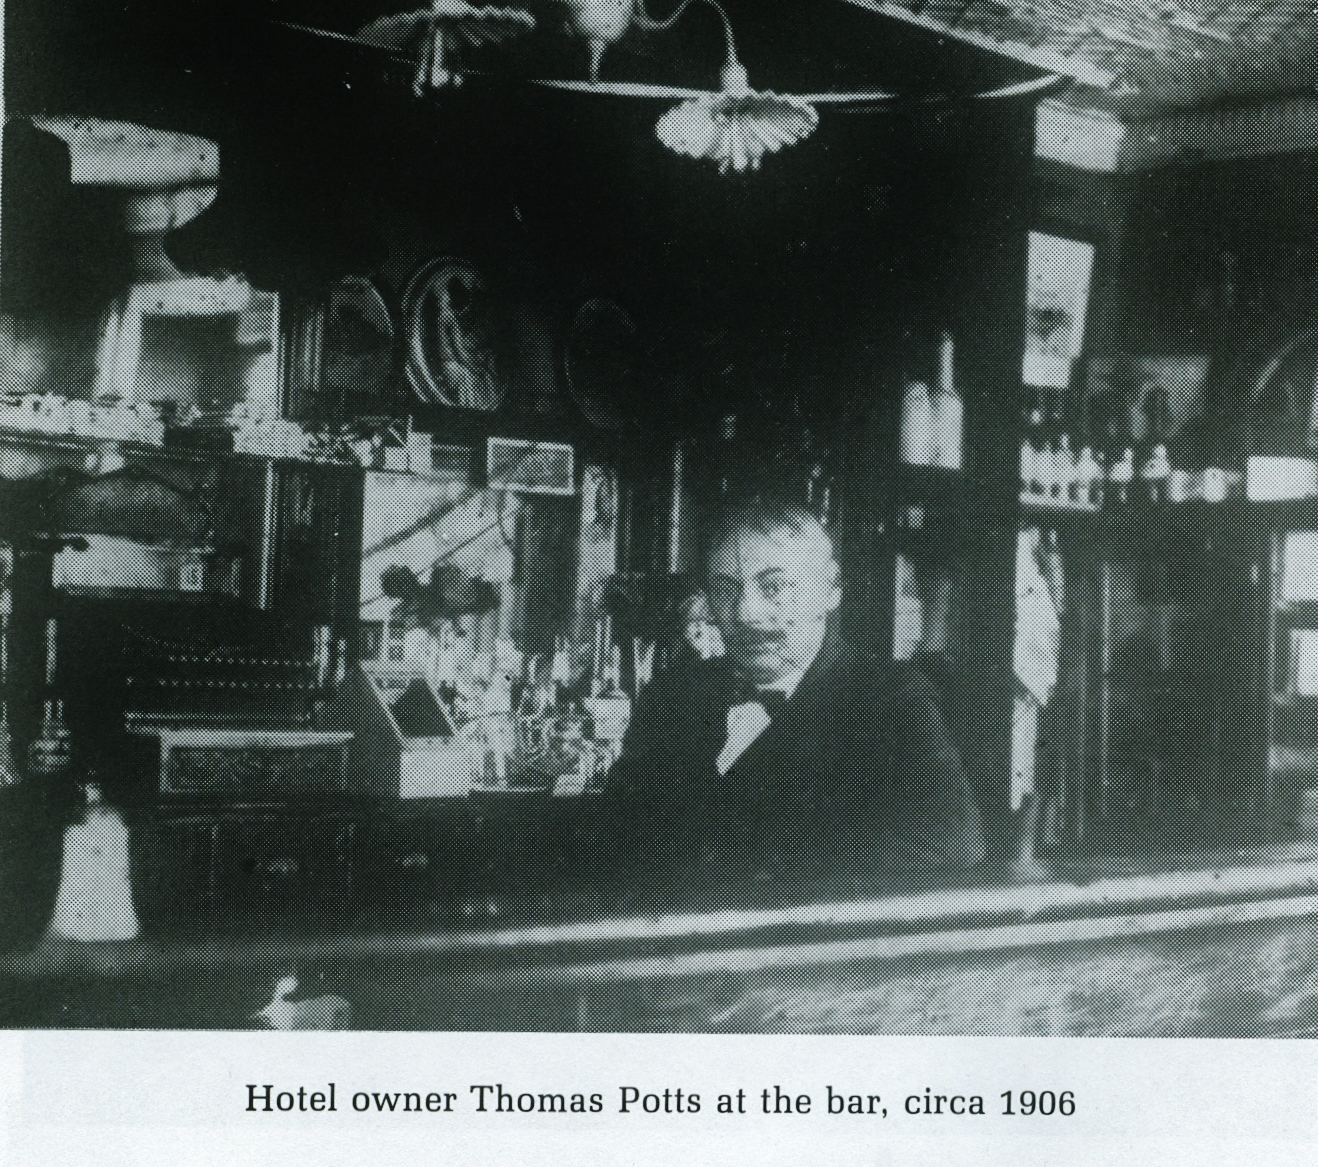 Thomas Potts Hotel owner1906.jpg